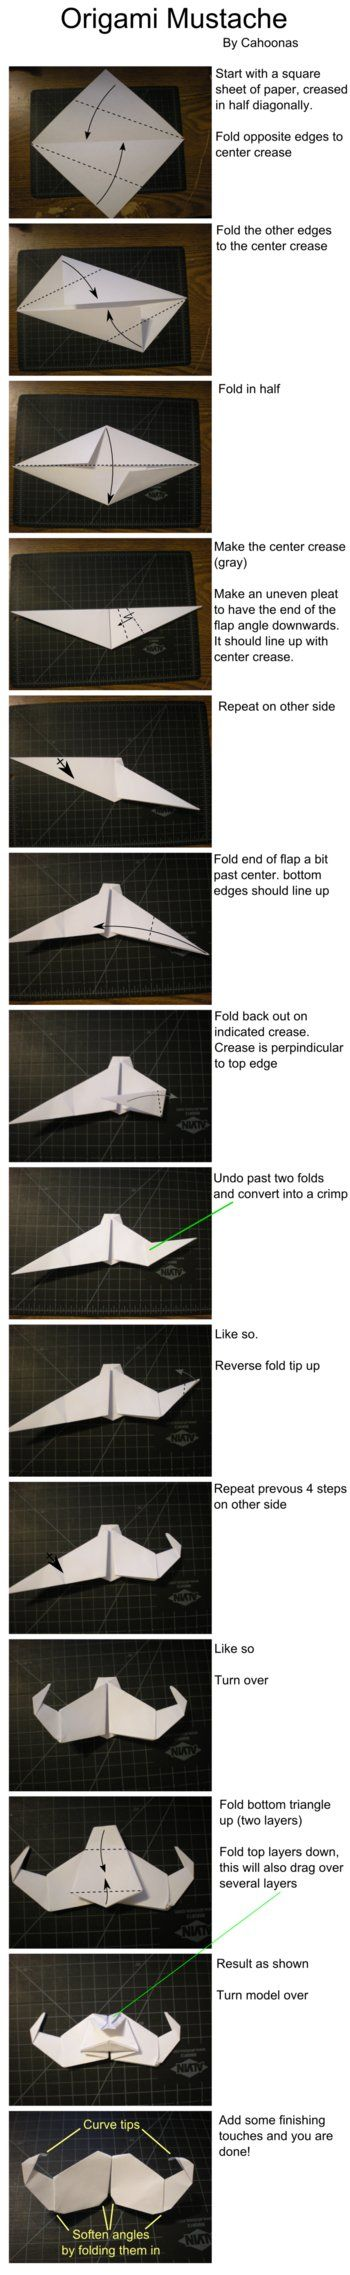 origami mustache instructions by cahoonas d4o2w5f